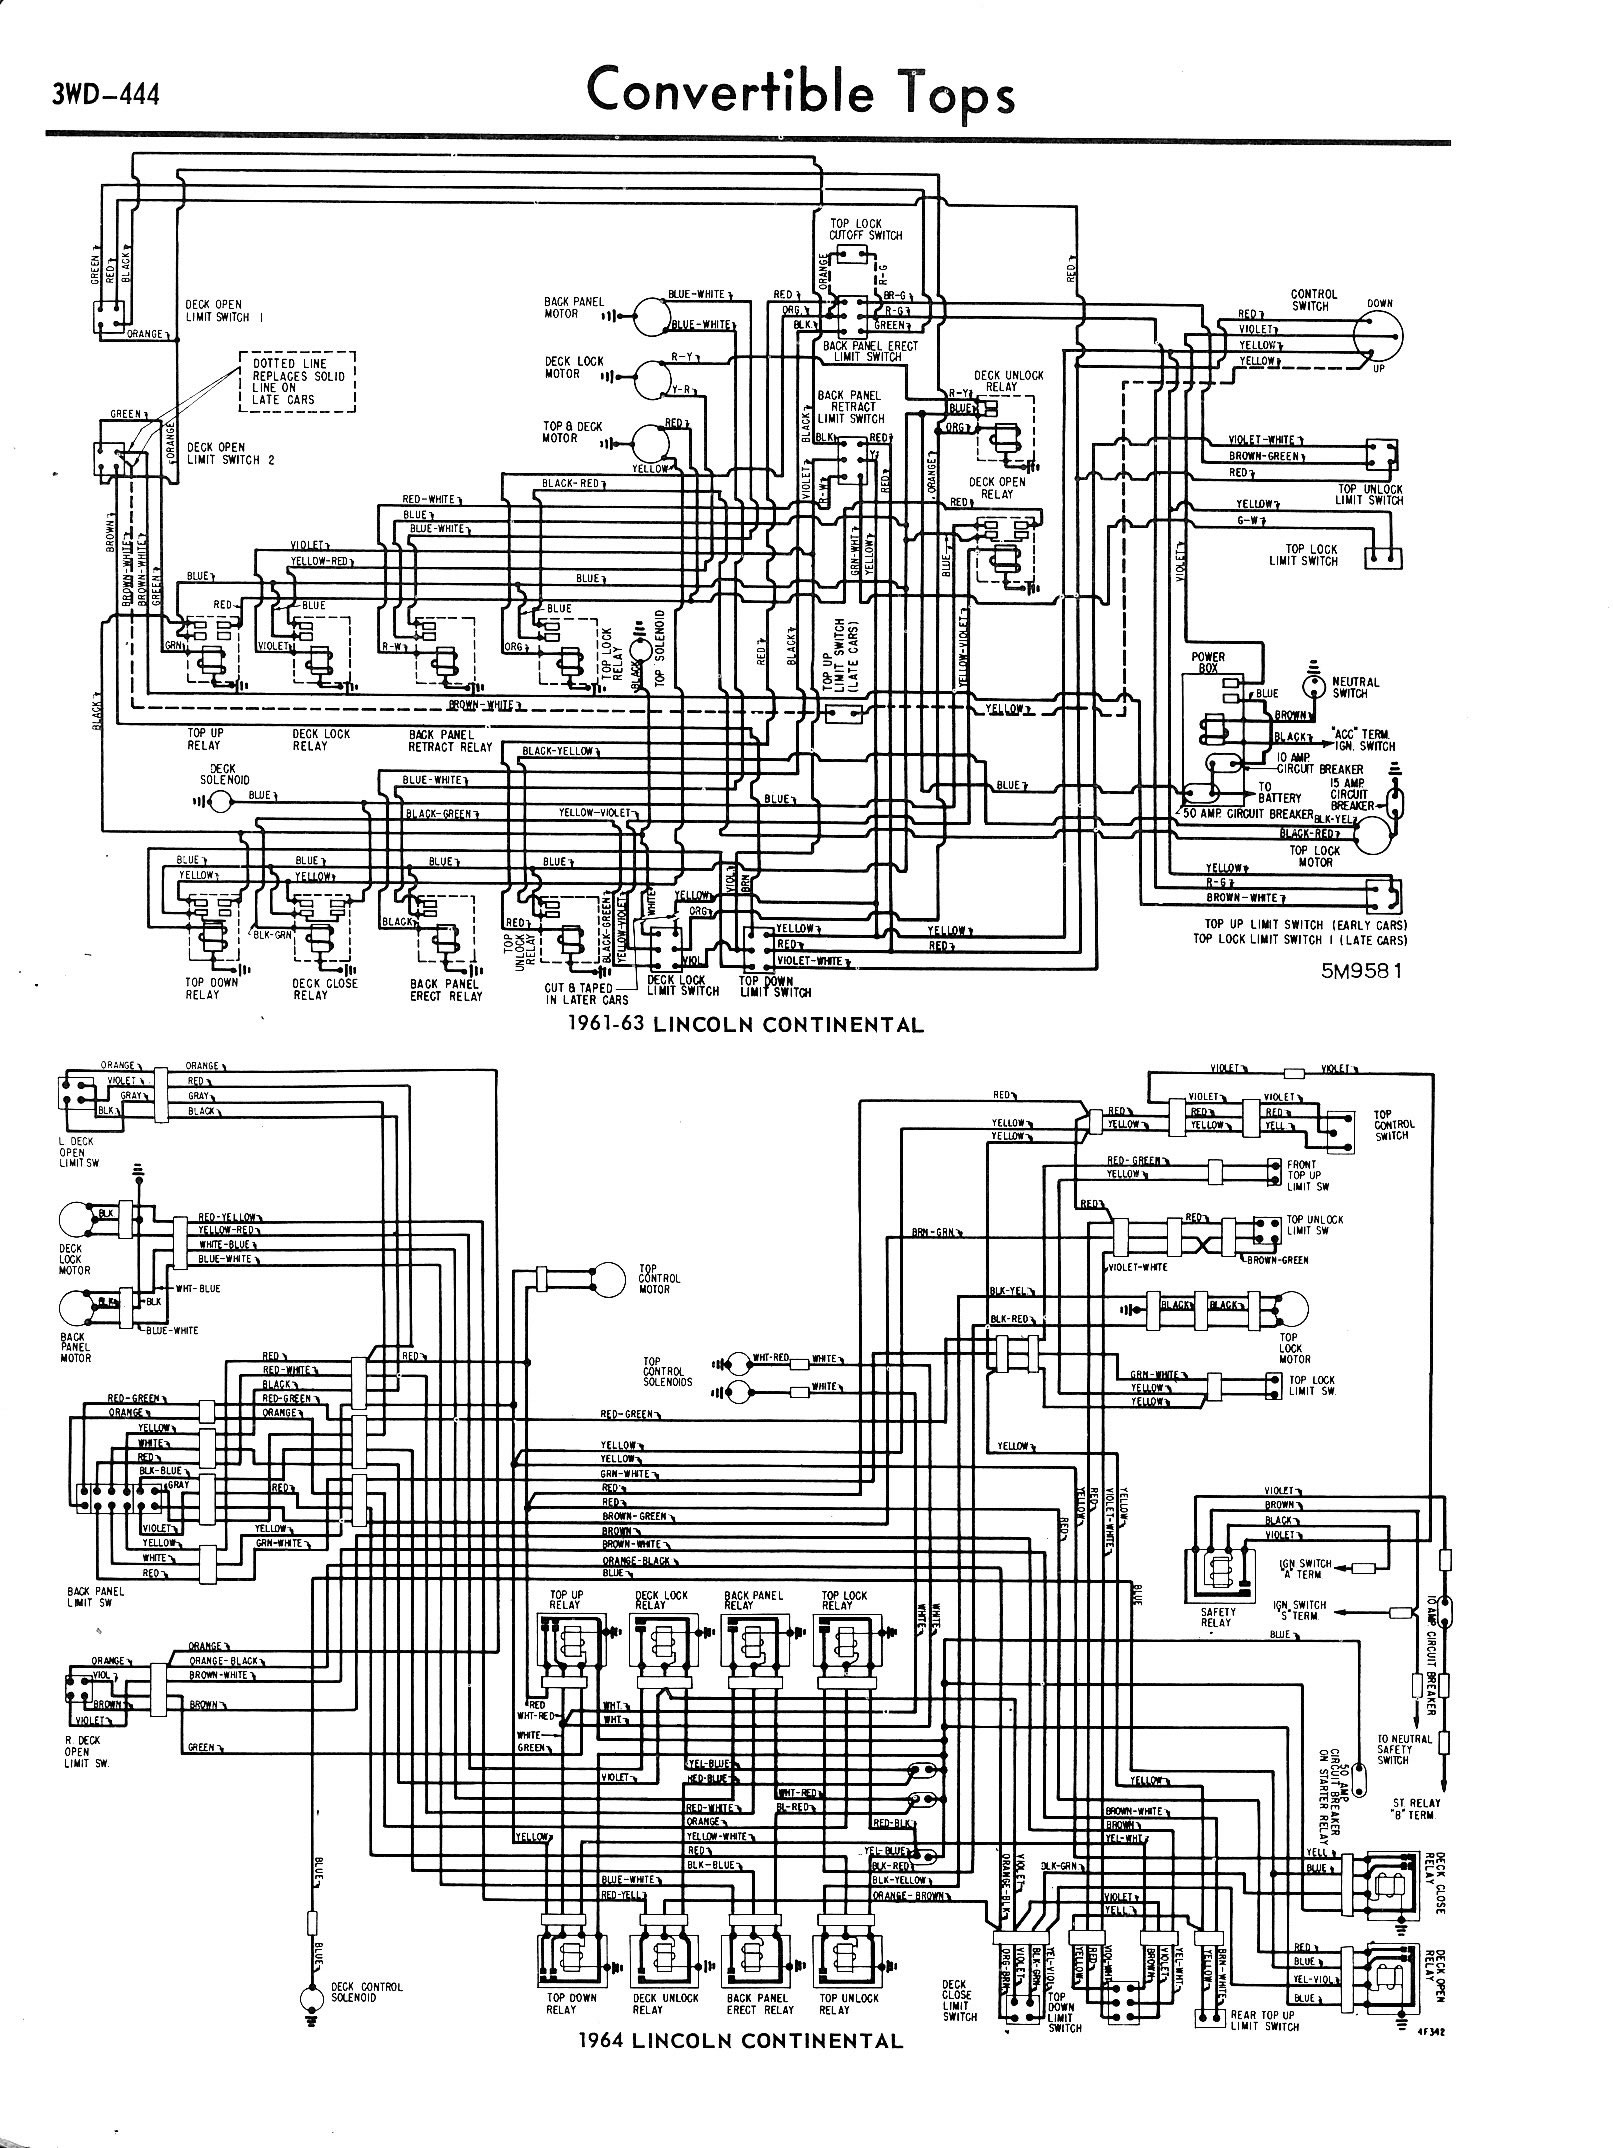 convertible top wiring schematics wiring diagrams u2022 rh seniorlivinguniversity co Raising Convertible Top Motor bmw e36 convertible top wiring diagram